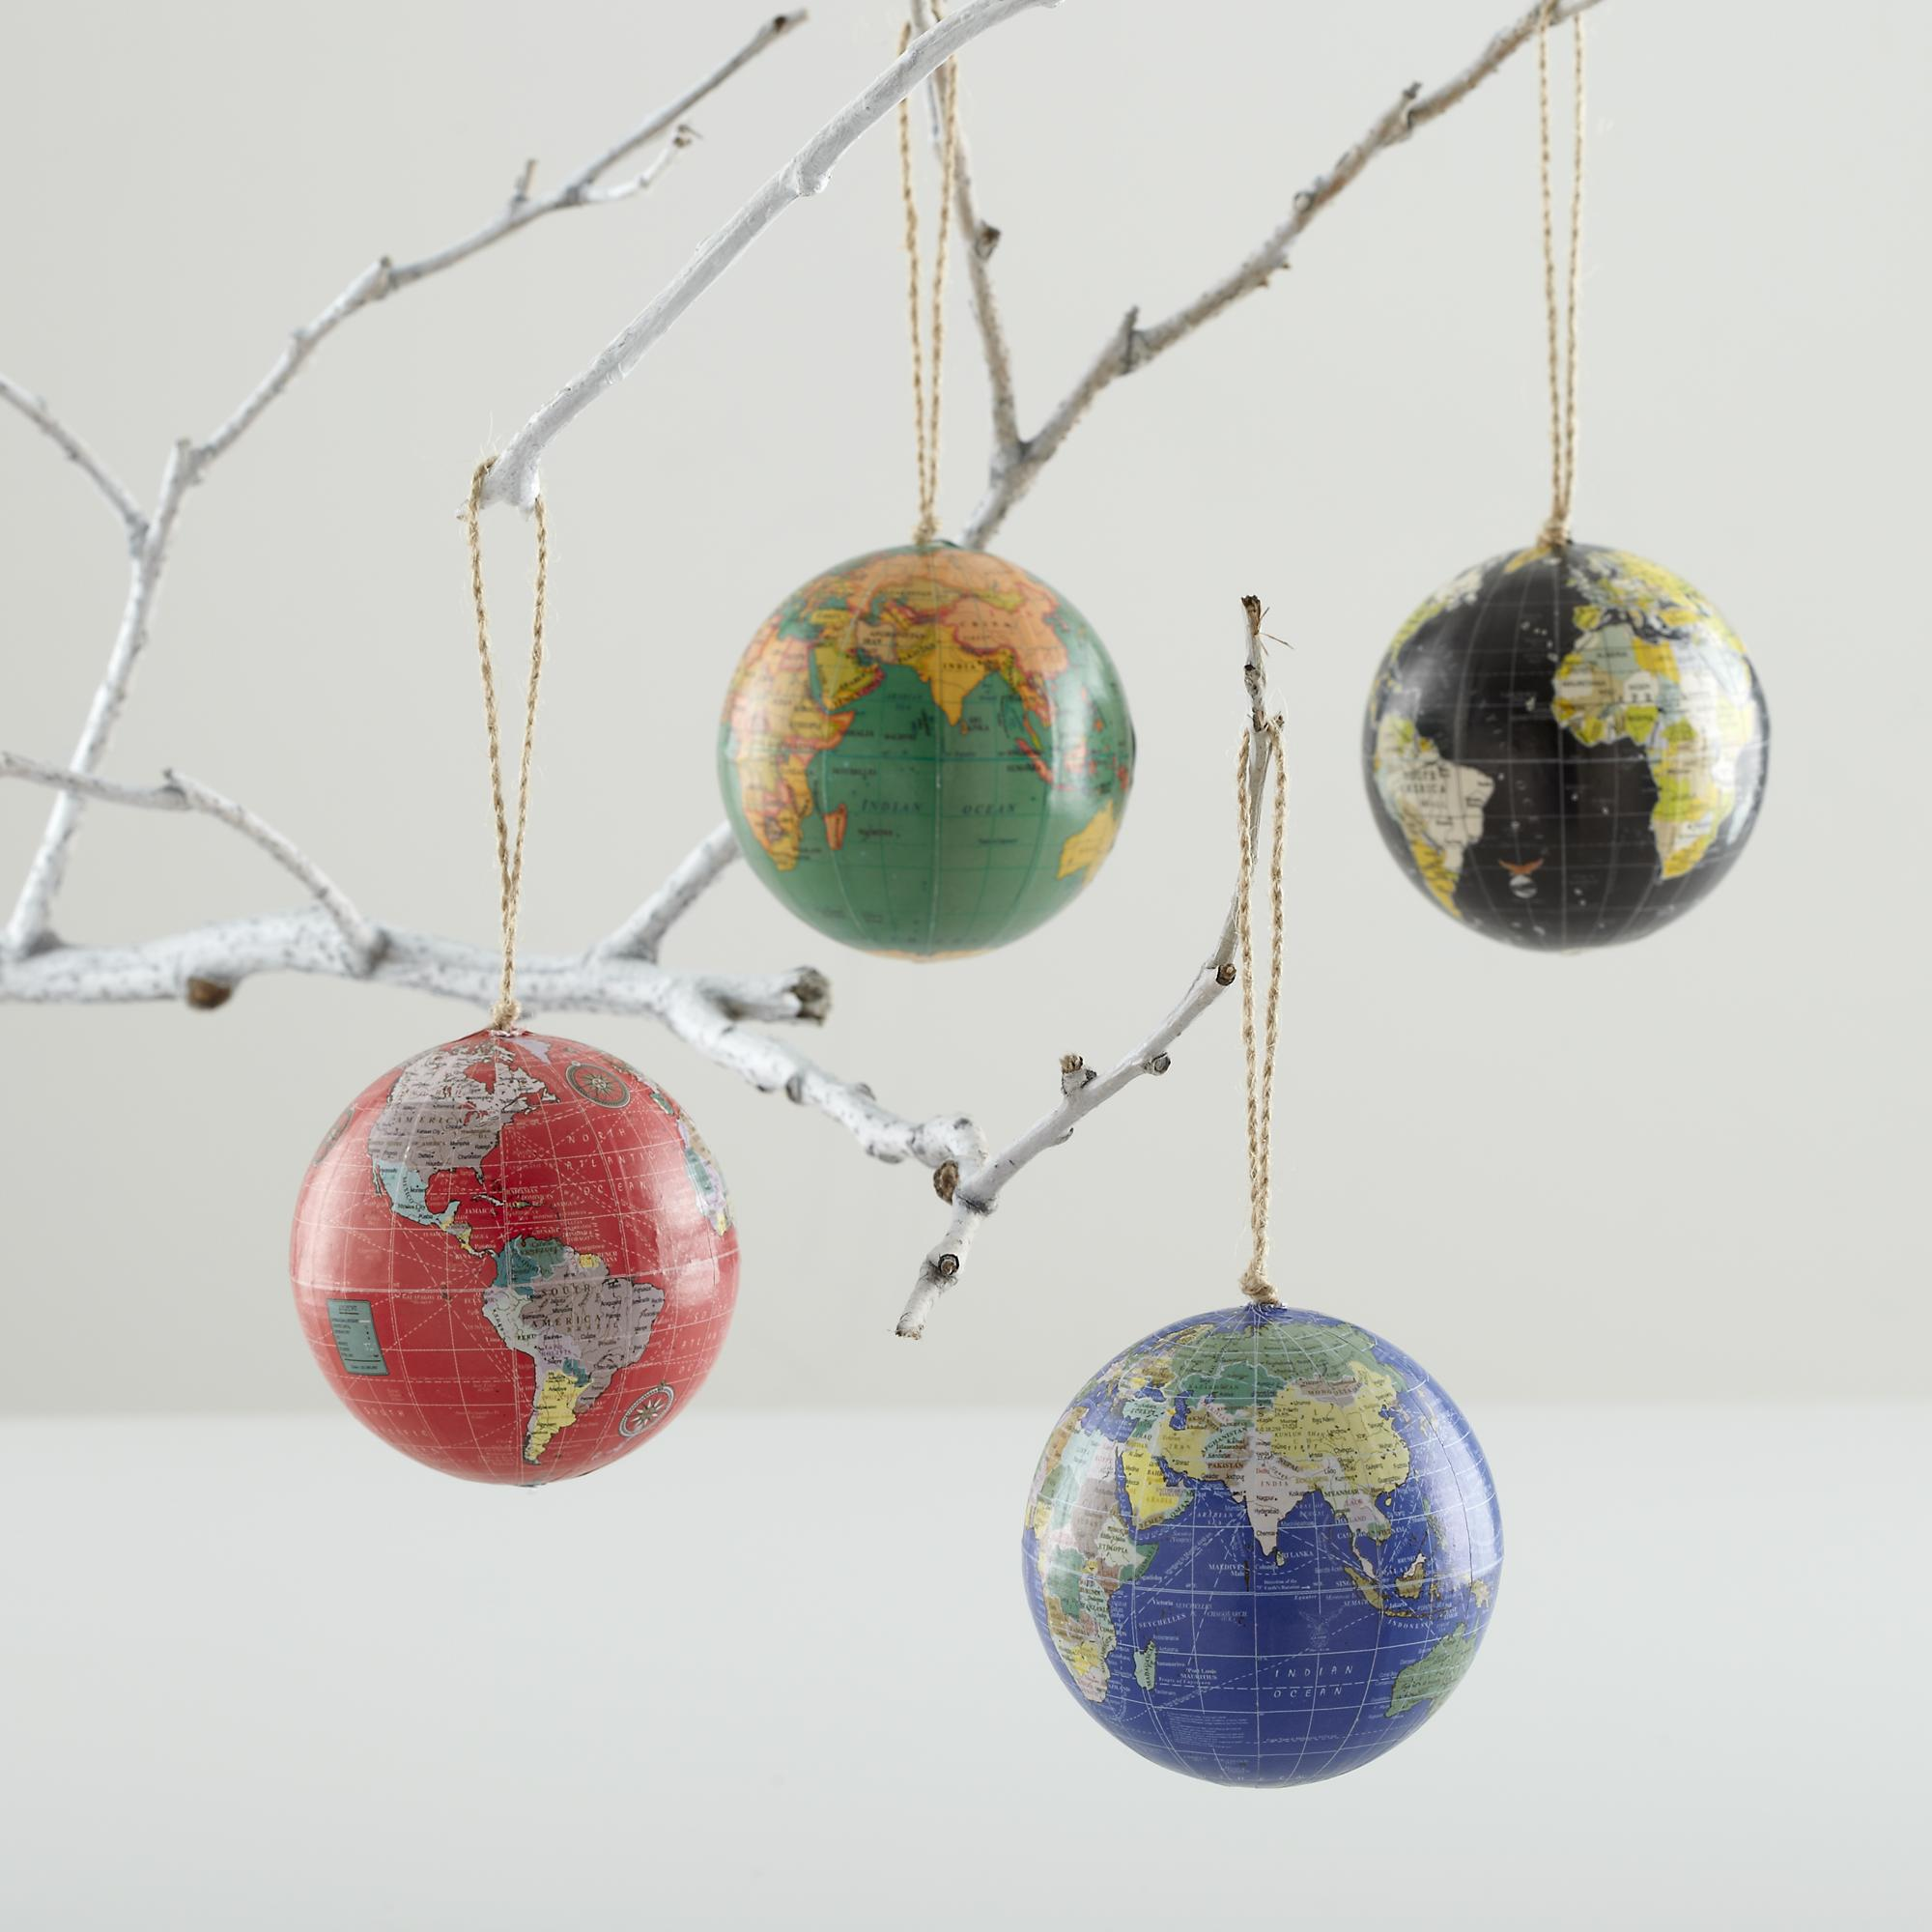 World globe christmas ornaments - Globe Ball Ornaments